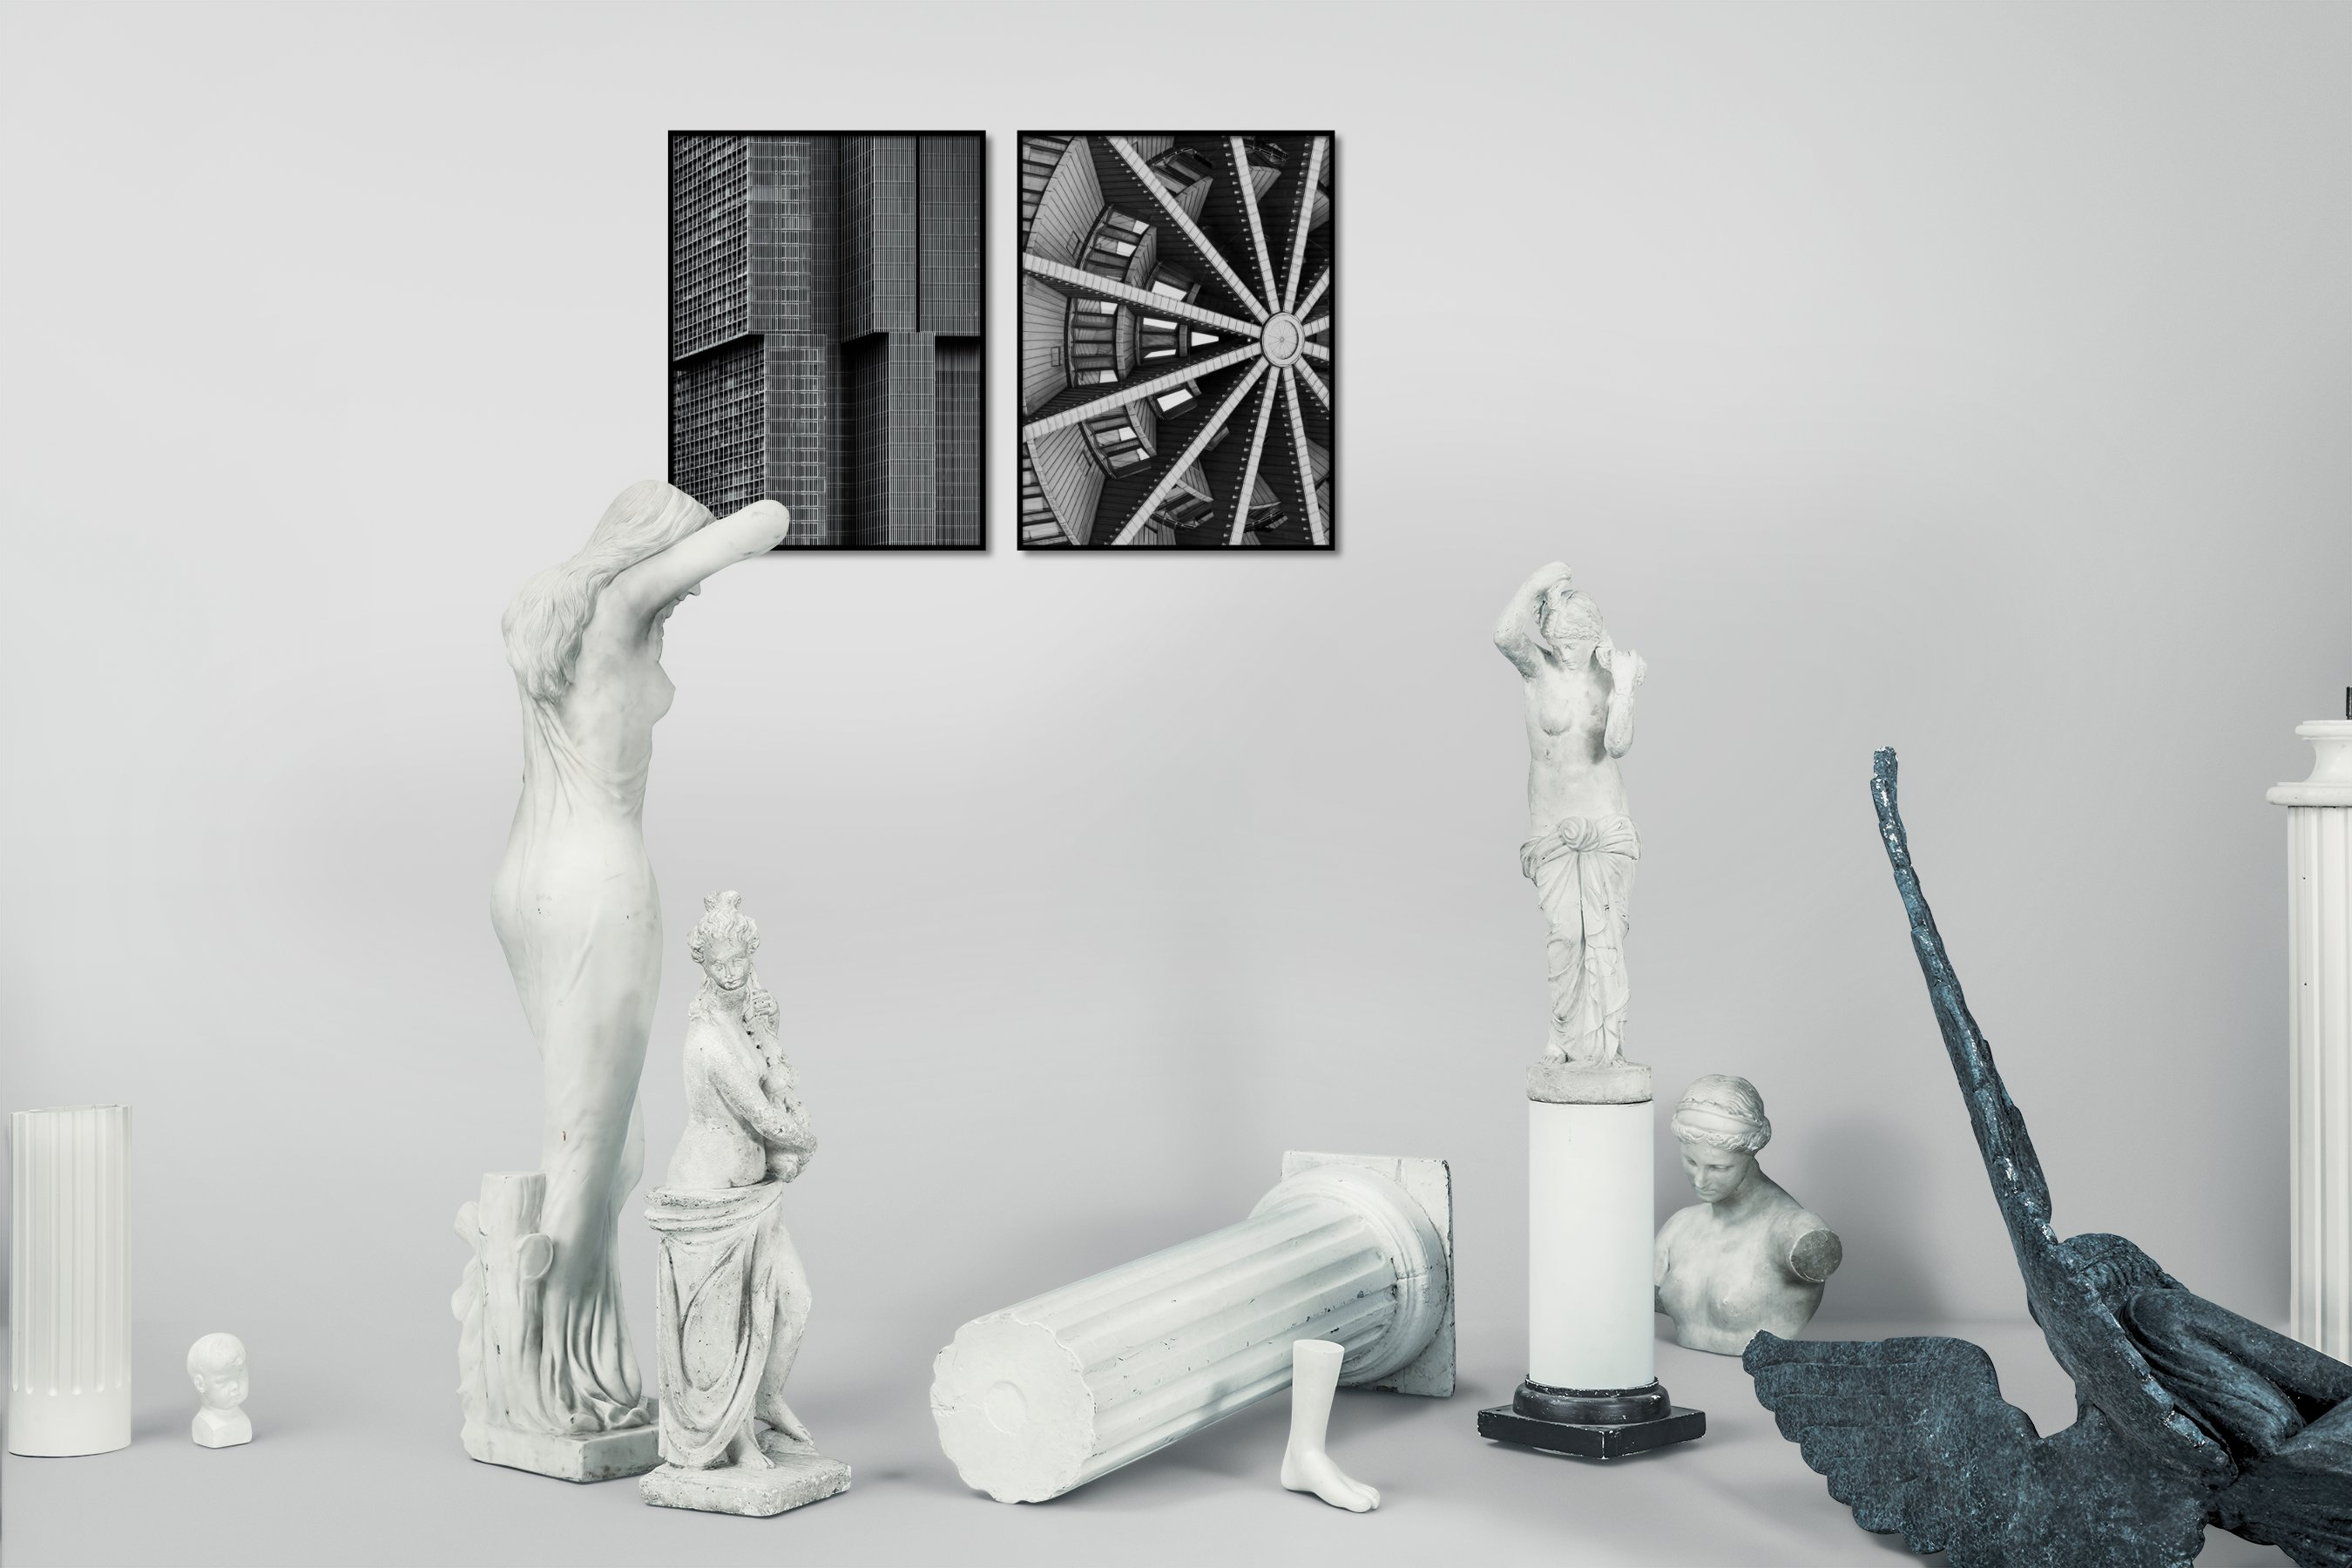 Gallery wall idea with six framed pictures arranged on a wall depicting Black & White, For the Maximalist, City Life, For the Moderate, and Fashion & Beauty